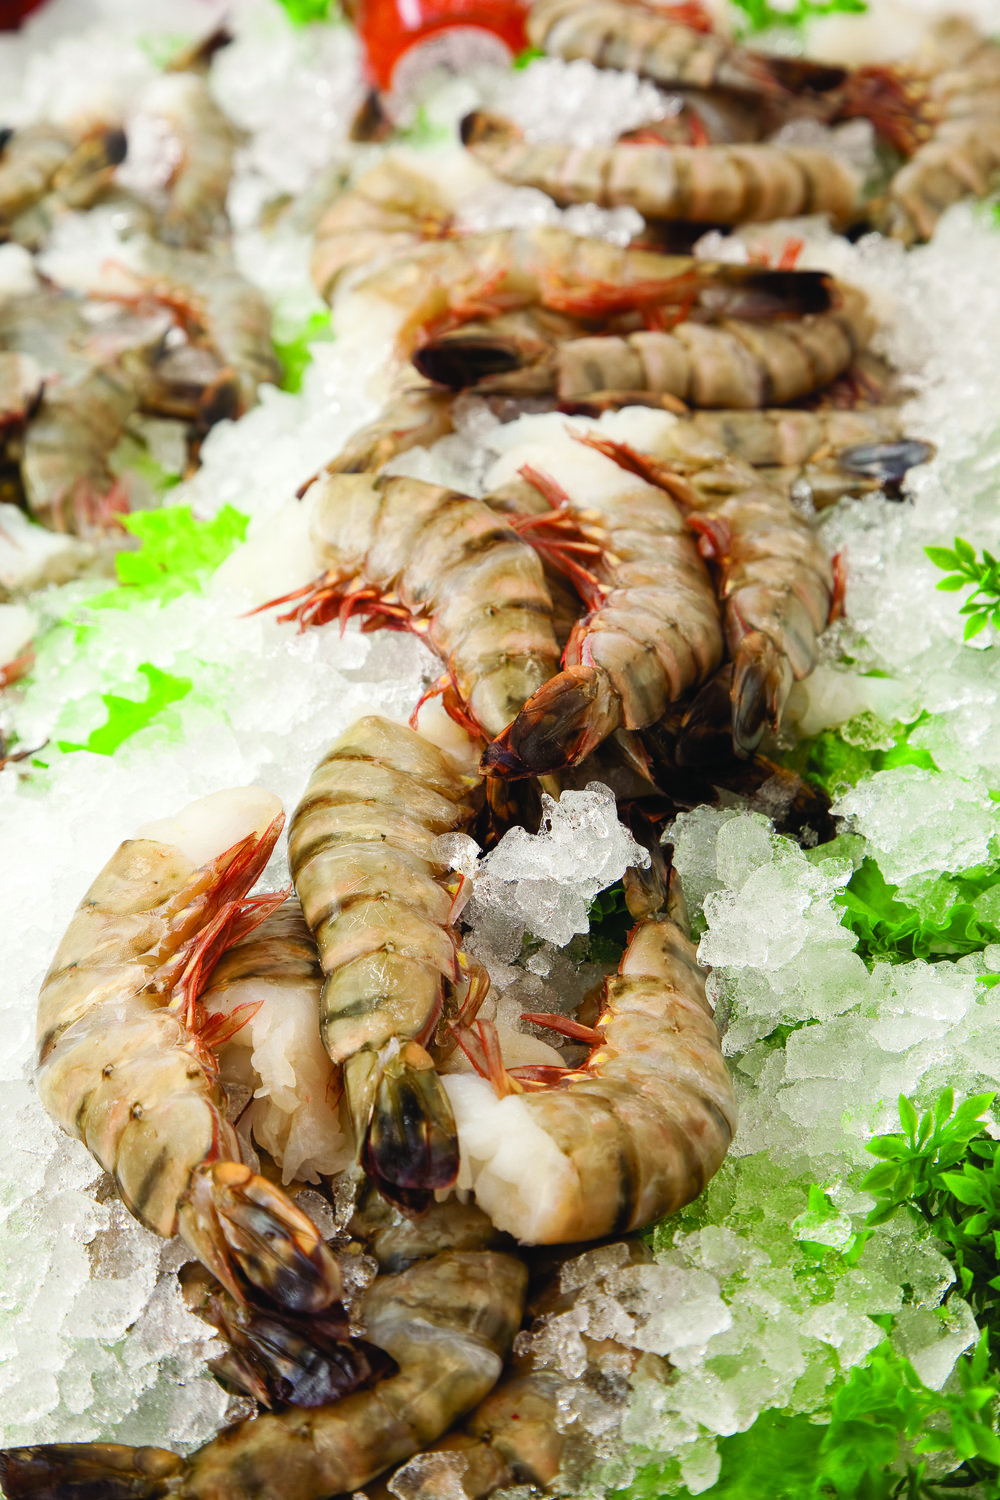 SUCCULENT BLACK TIGER PRAWNS